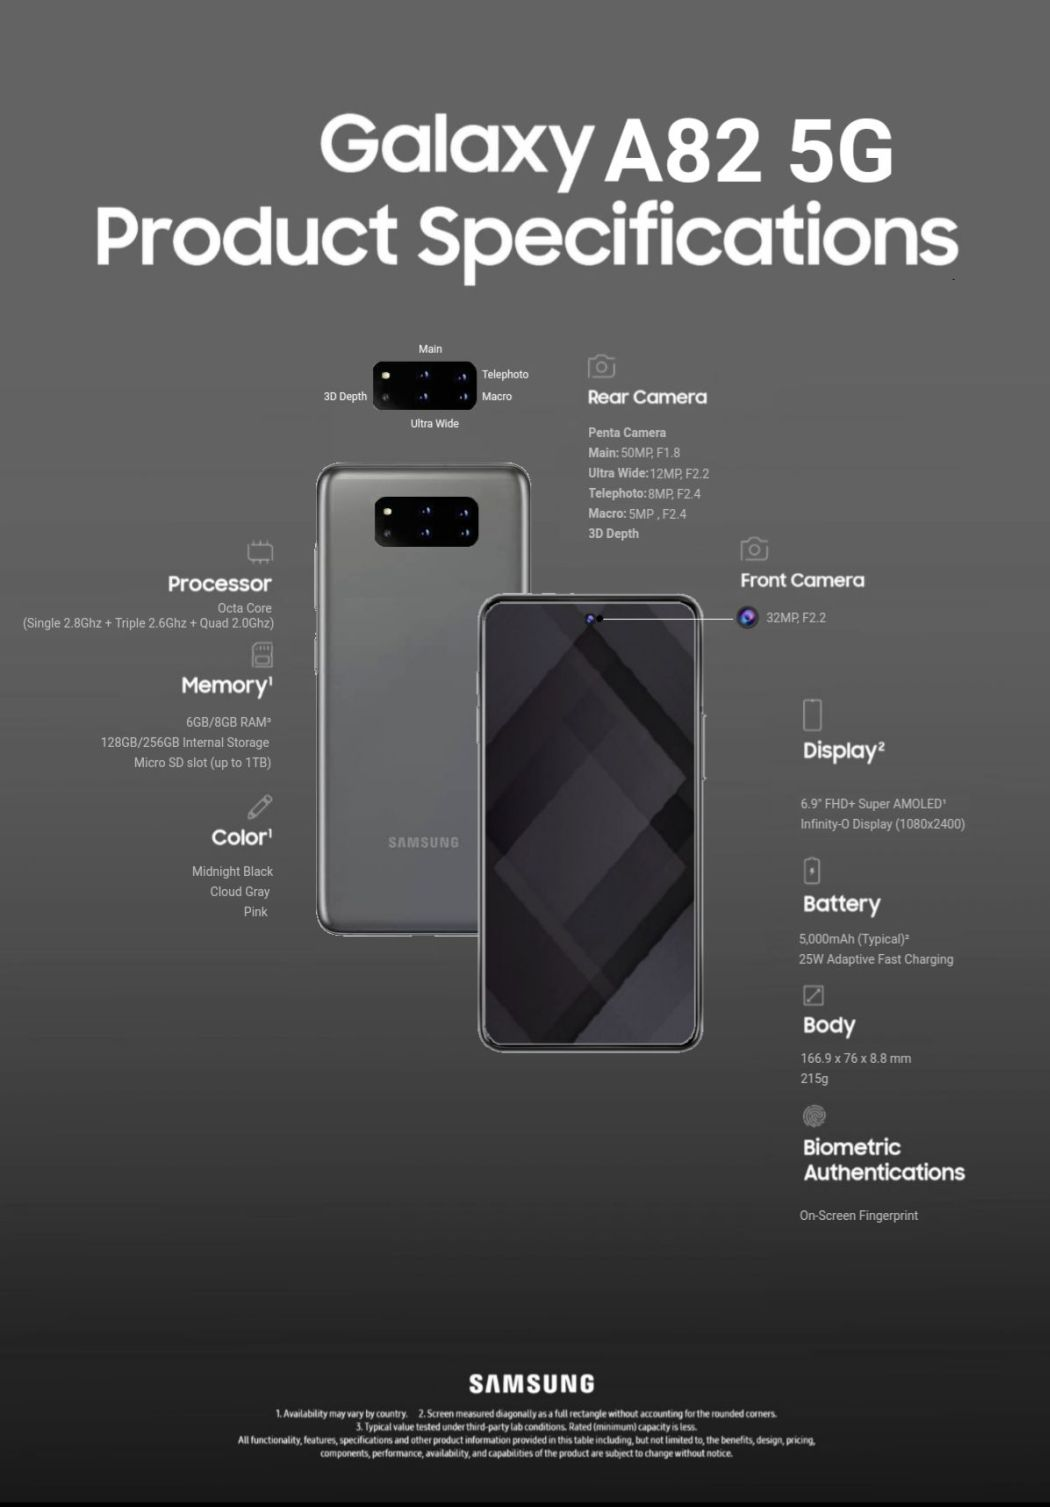 Samsung Galaxy A82 5G Rendered and Specced With Unusual Camera Design – Concept Phones